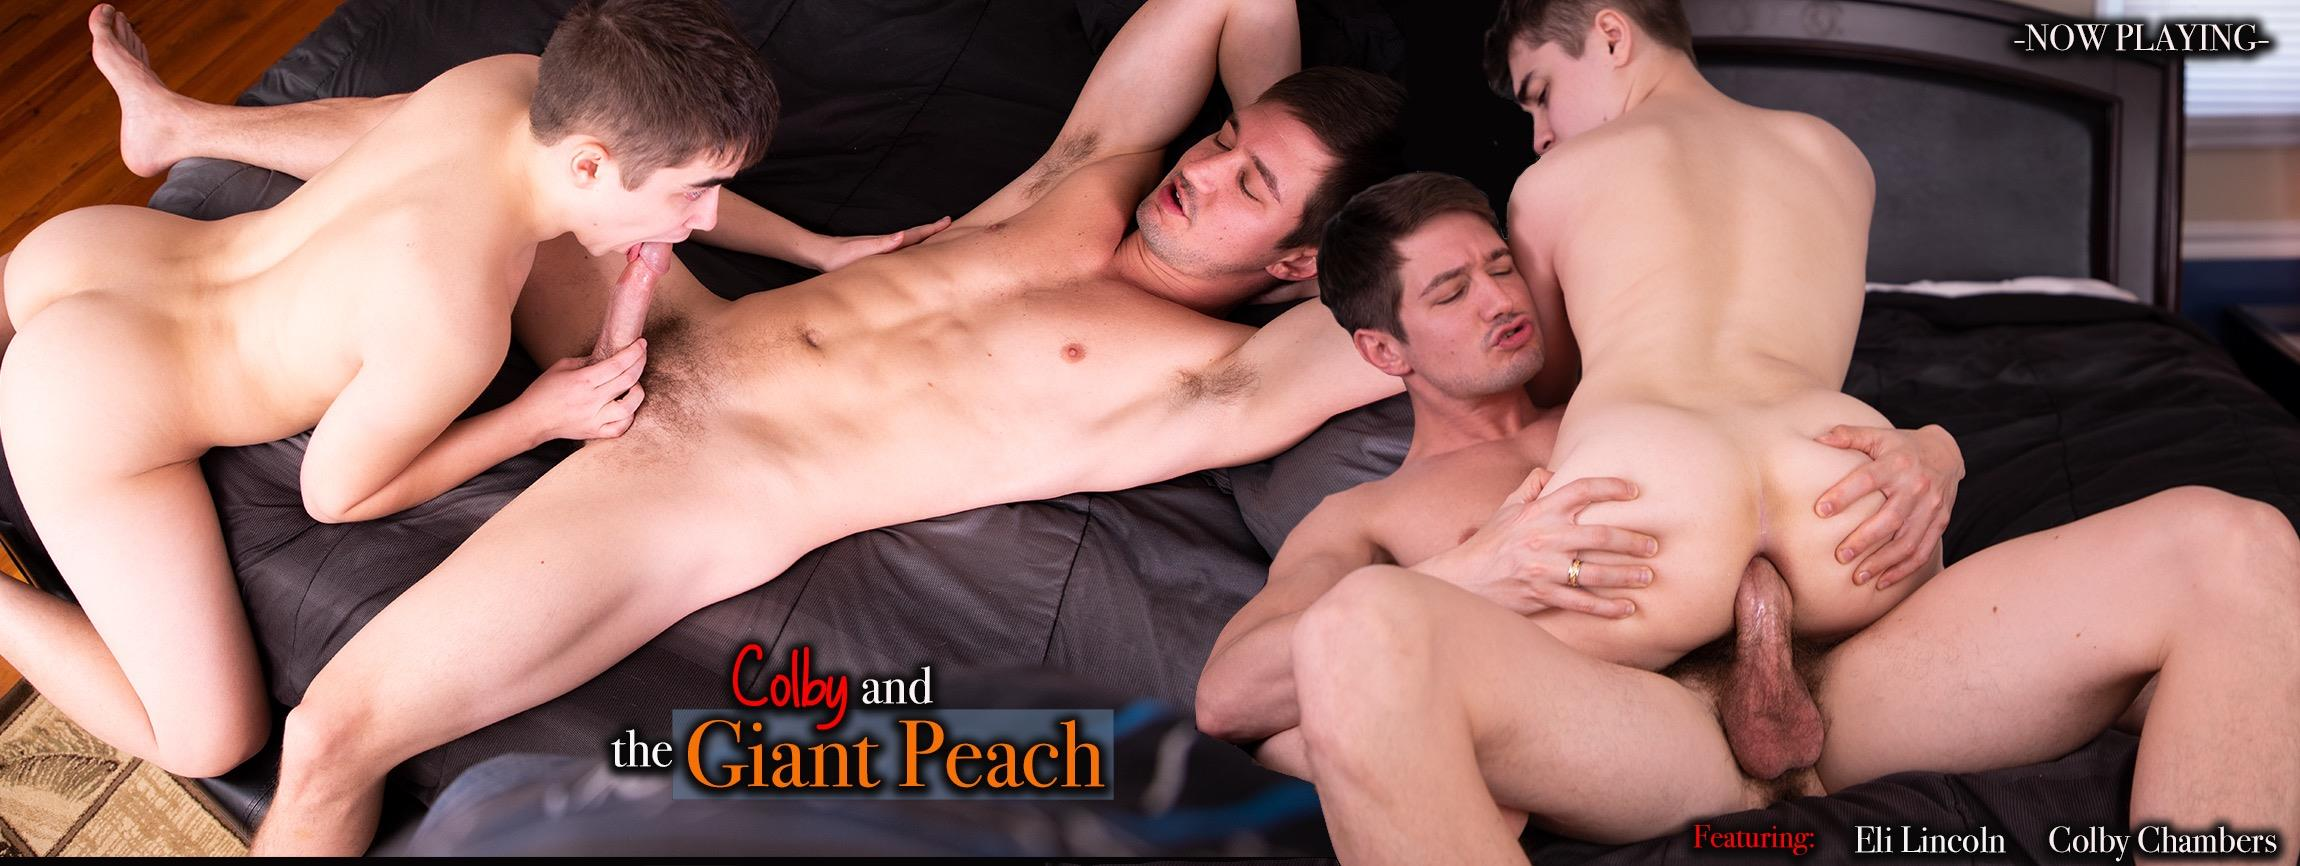 Colby and the Giant Peach